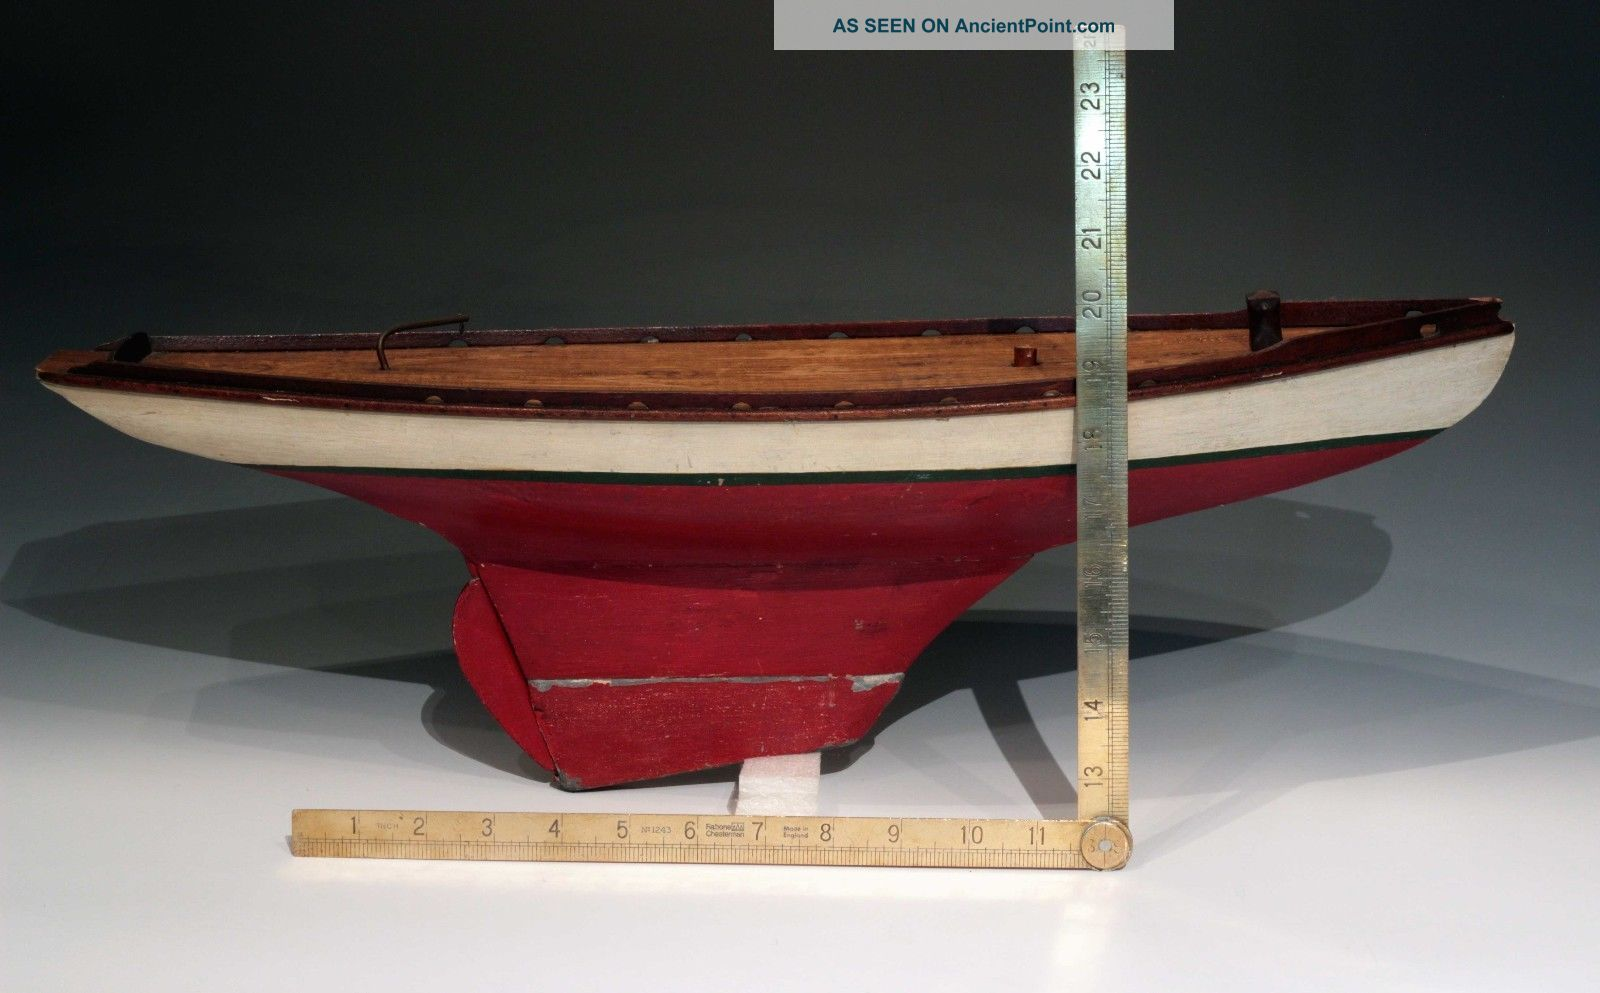 Antique Pond Boat,  With Rudder And Lead Keel.  Great Deck Details. Model Ships photo